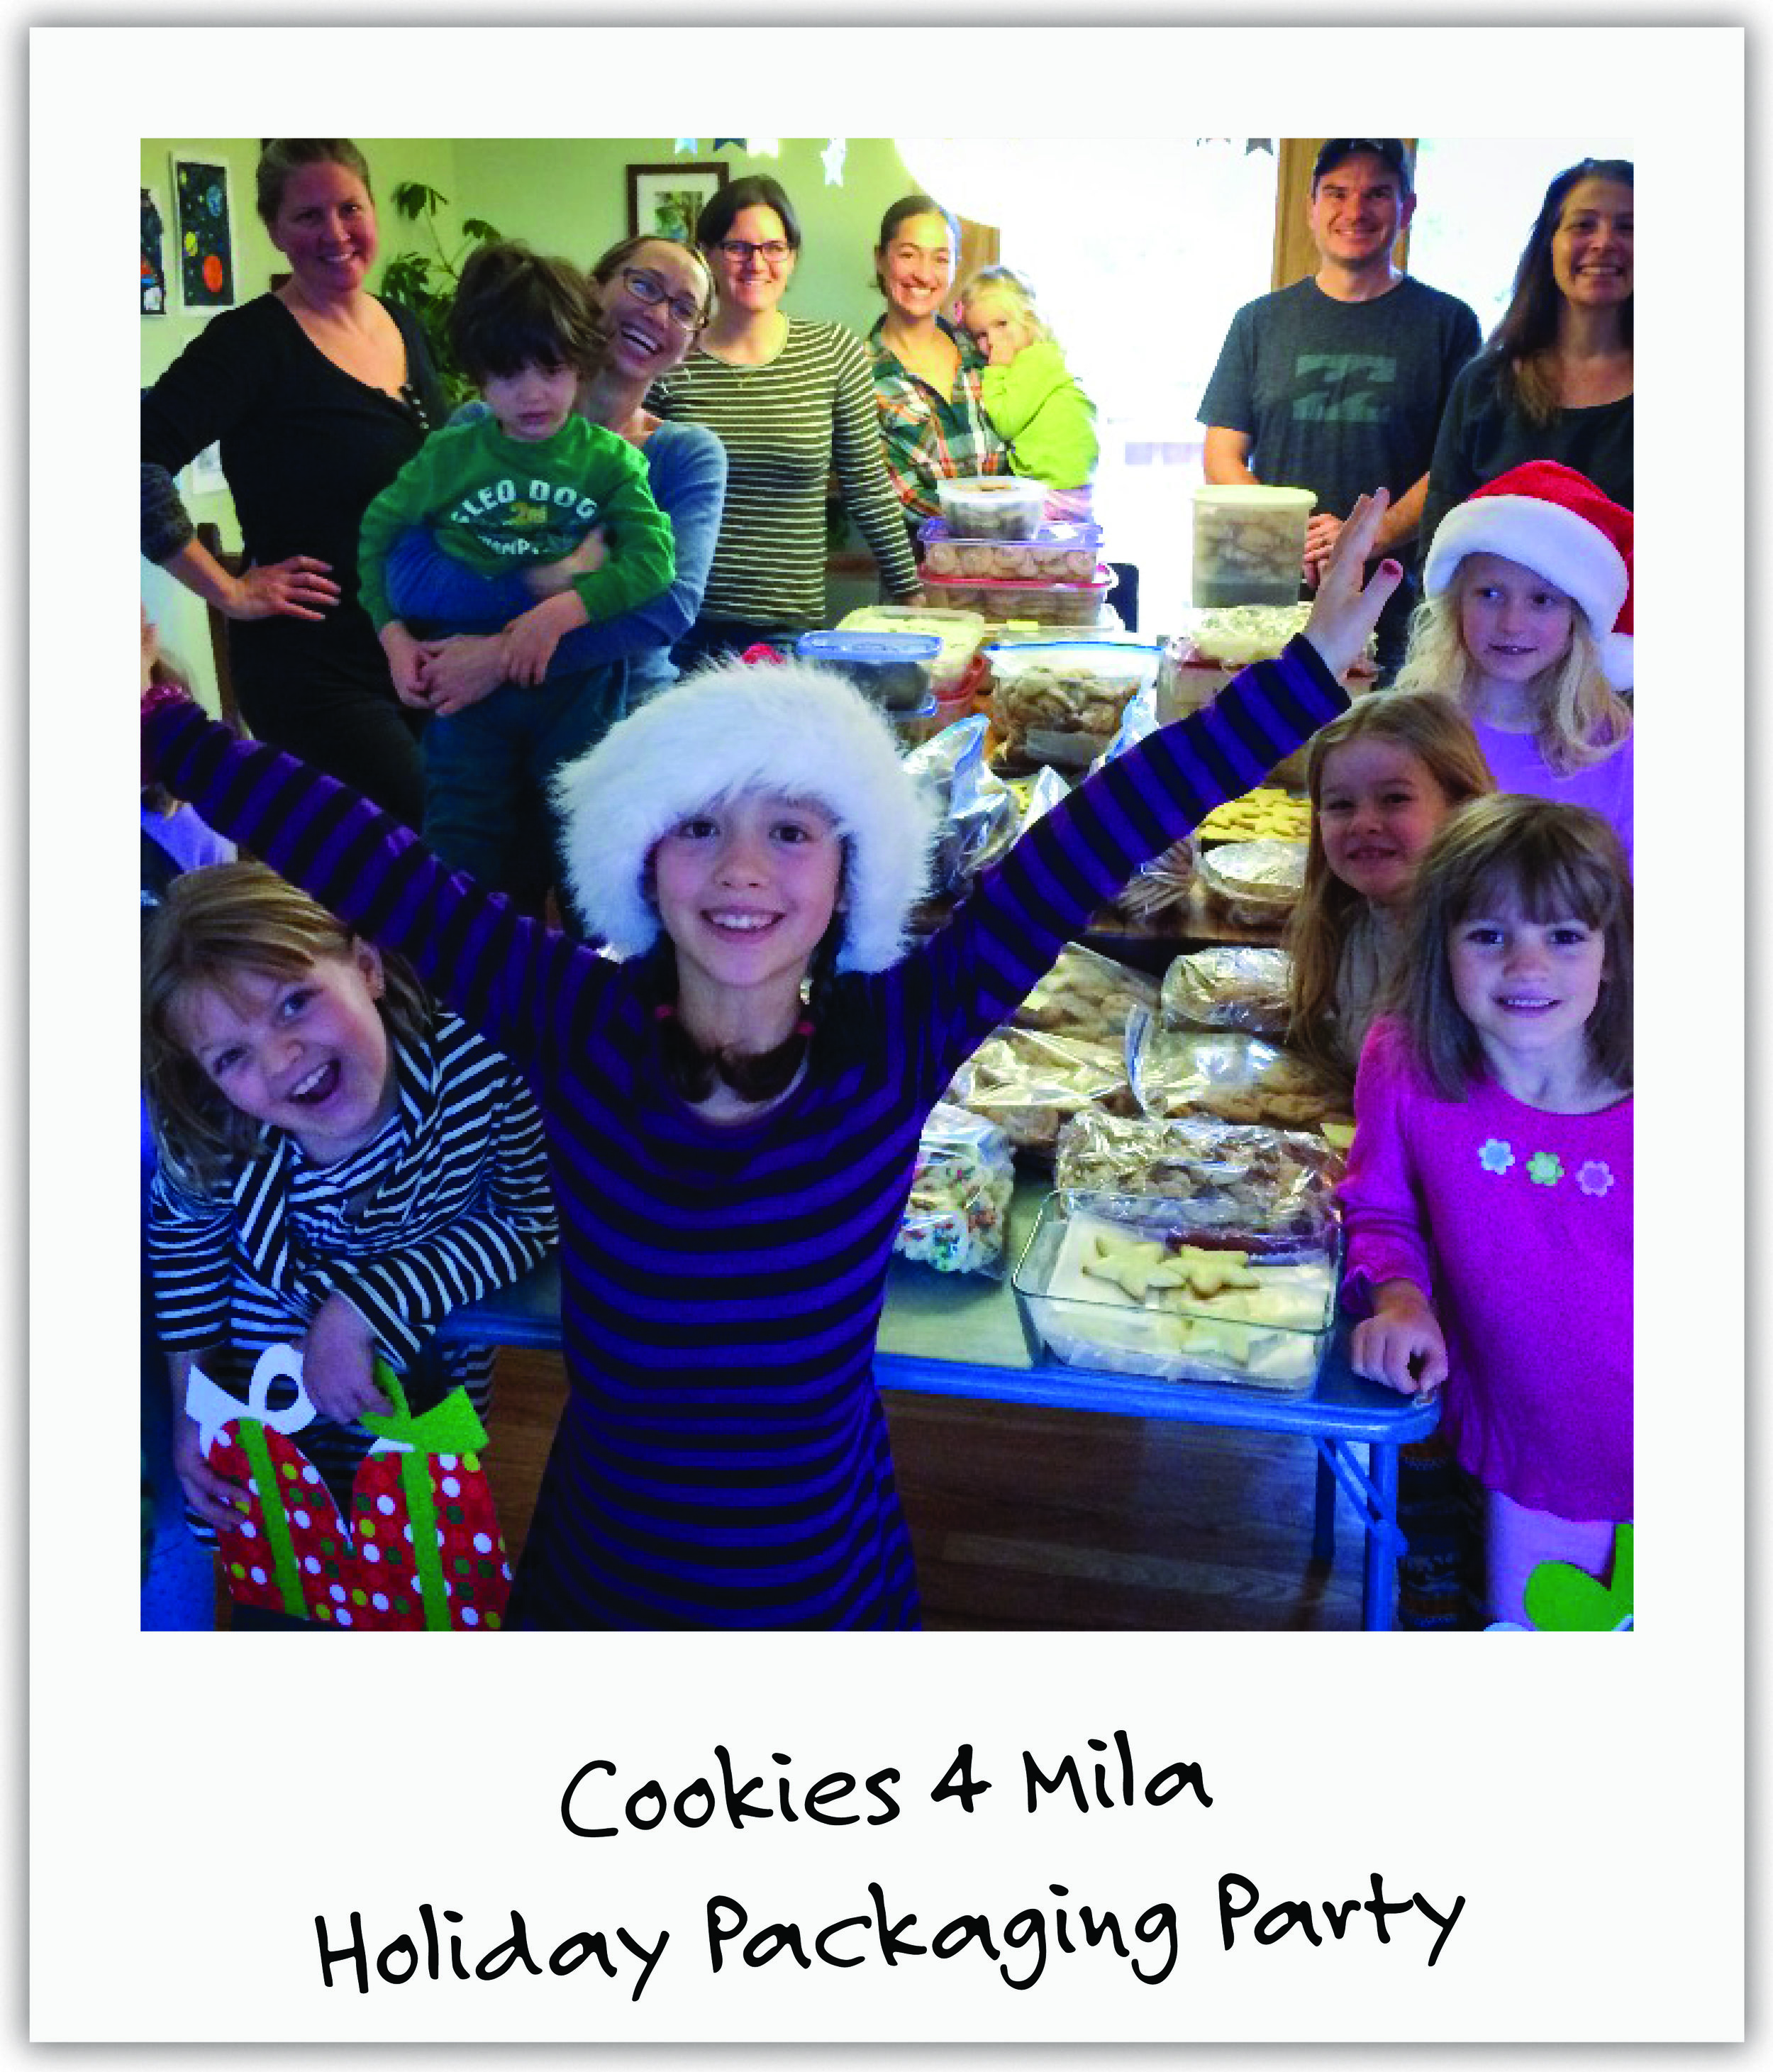 Fifteen families and 2 bakeries, led by Mila's biggest supporter Dana, baked, packaged and delivered 800 boxes of holiday cookies in one weekend!